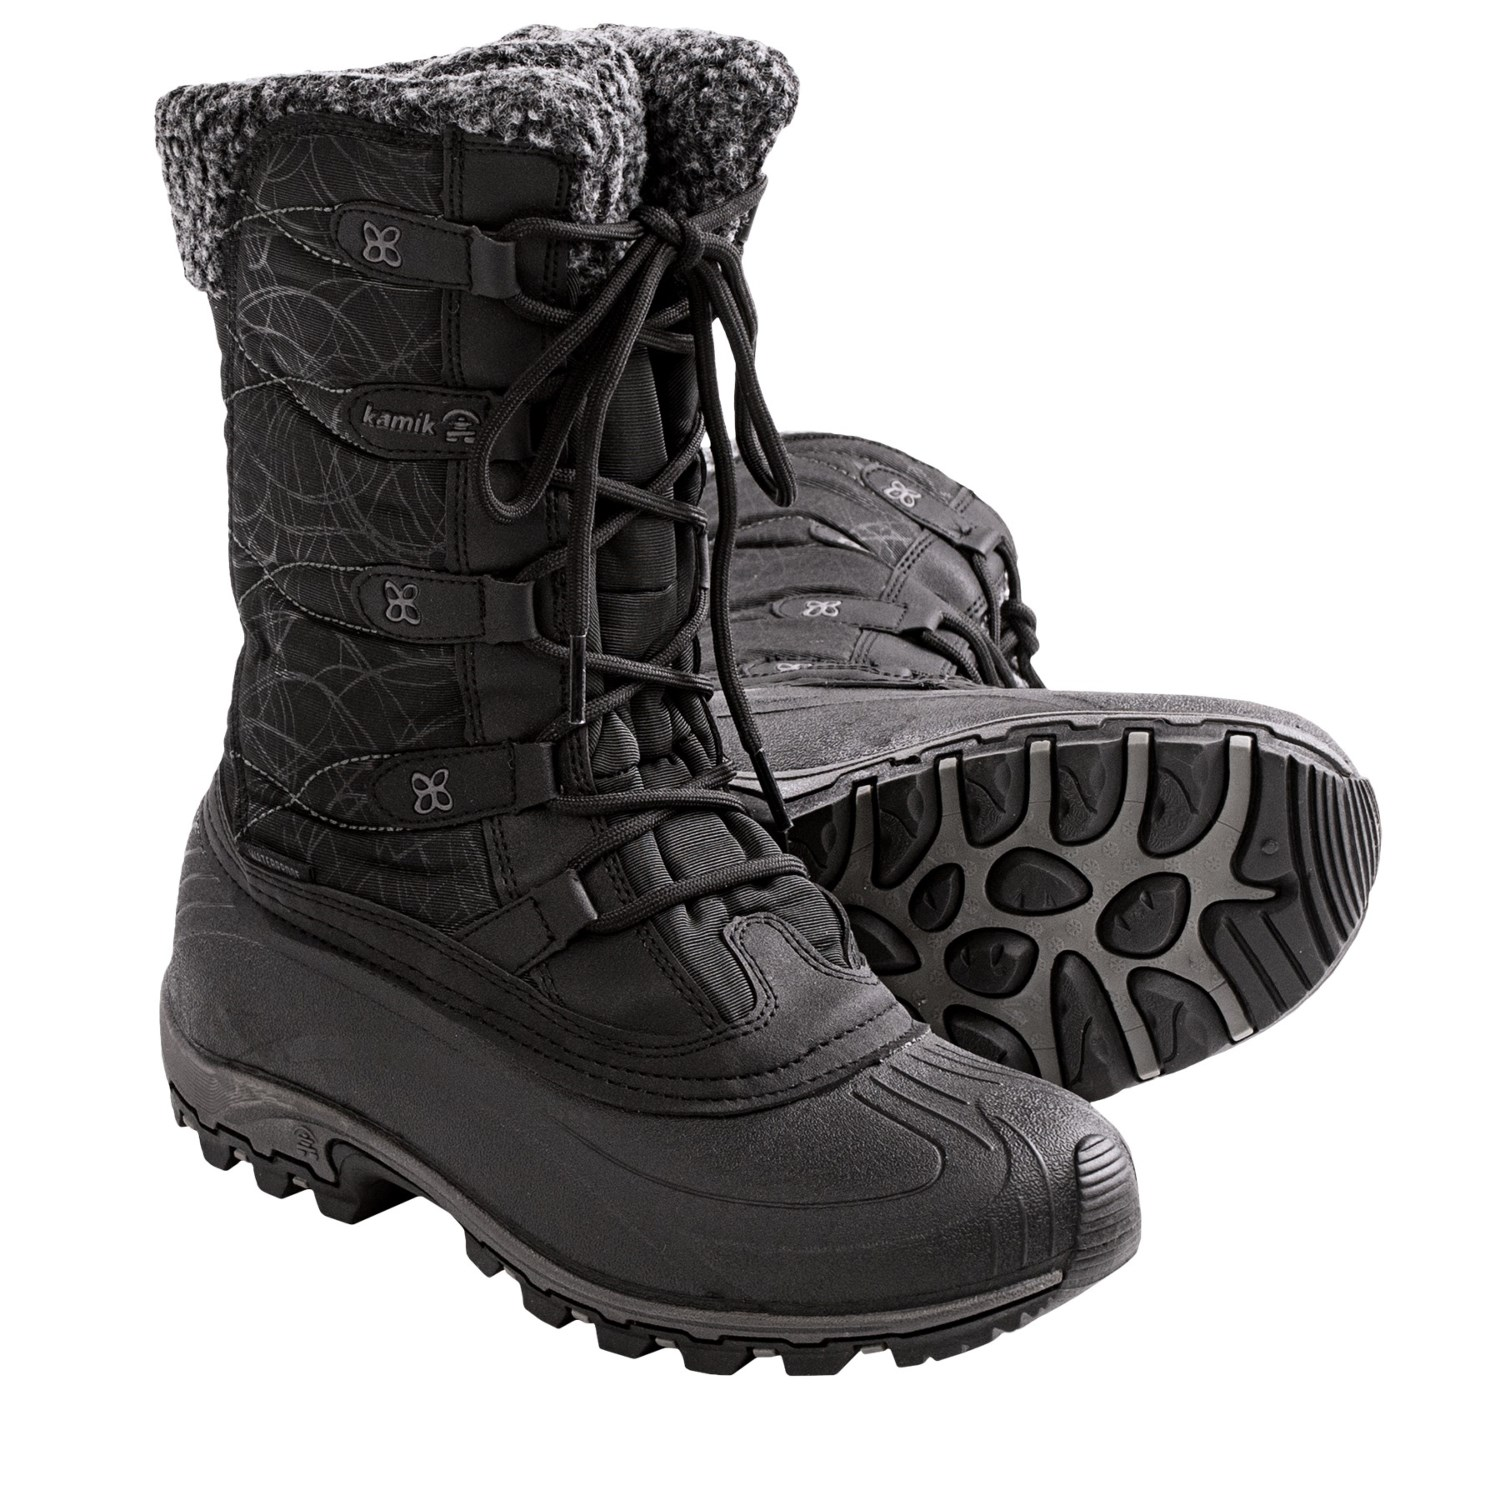 Kamik Fortress Winter Snow Boots (For Women)